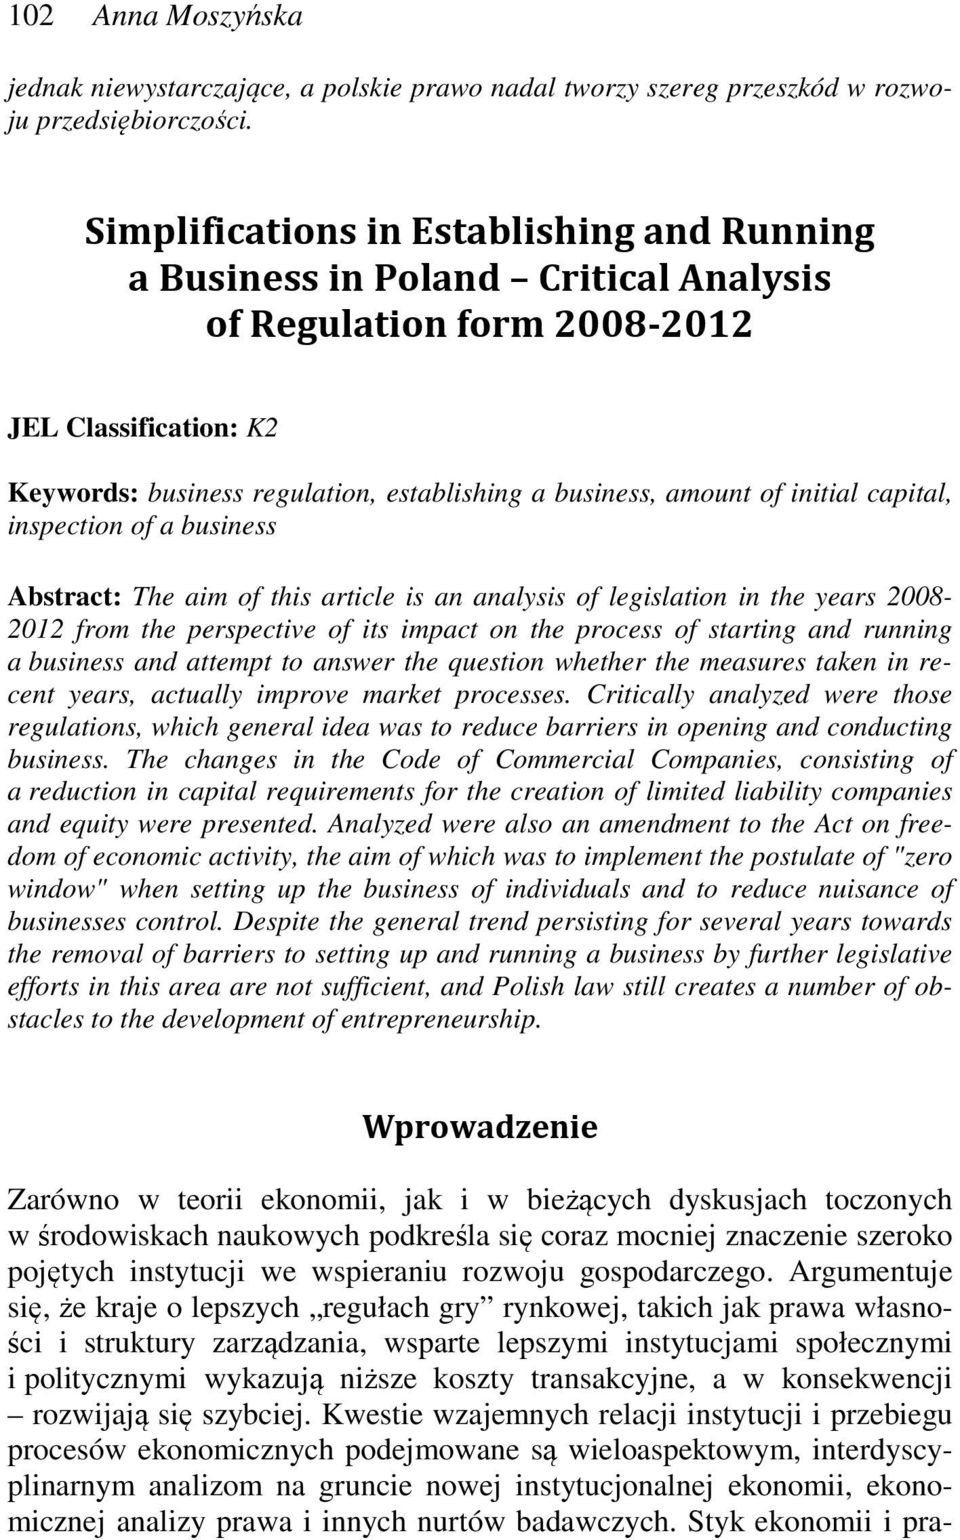 of initial capital, inspection of a business Abstract: The aim of this article is an analysis of legislation in the years 2008-2012 from the perspective of its impact on the process of starting and